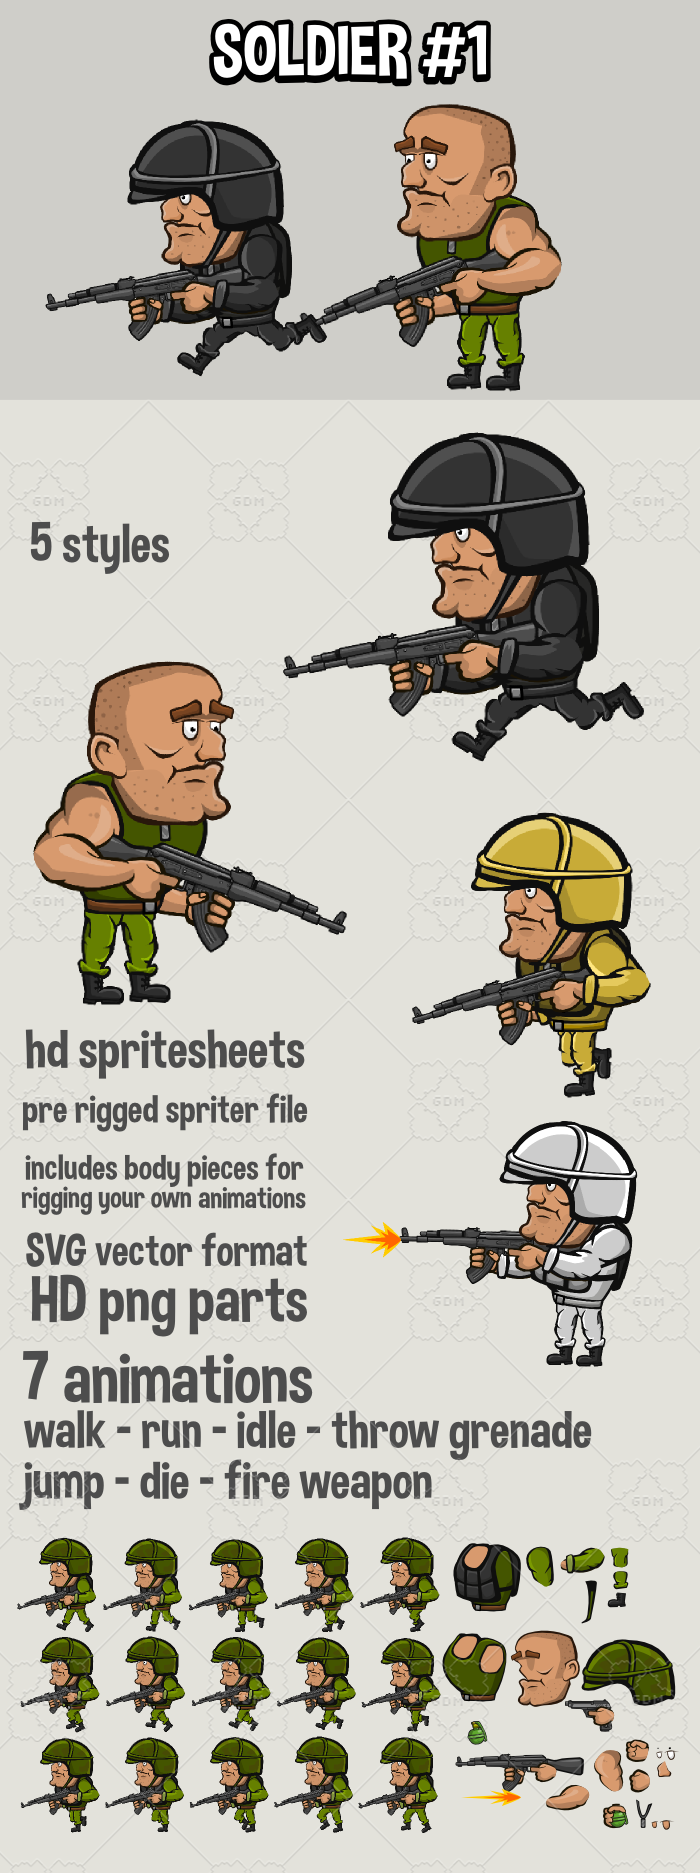 Animated soldier 1